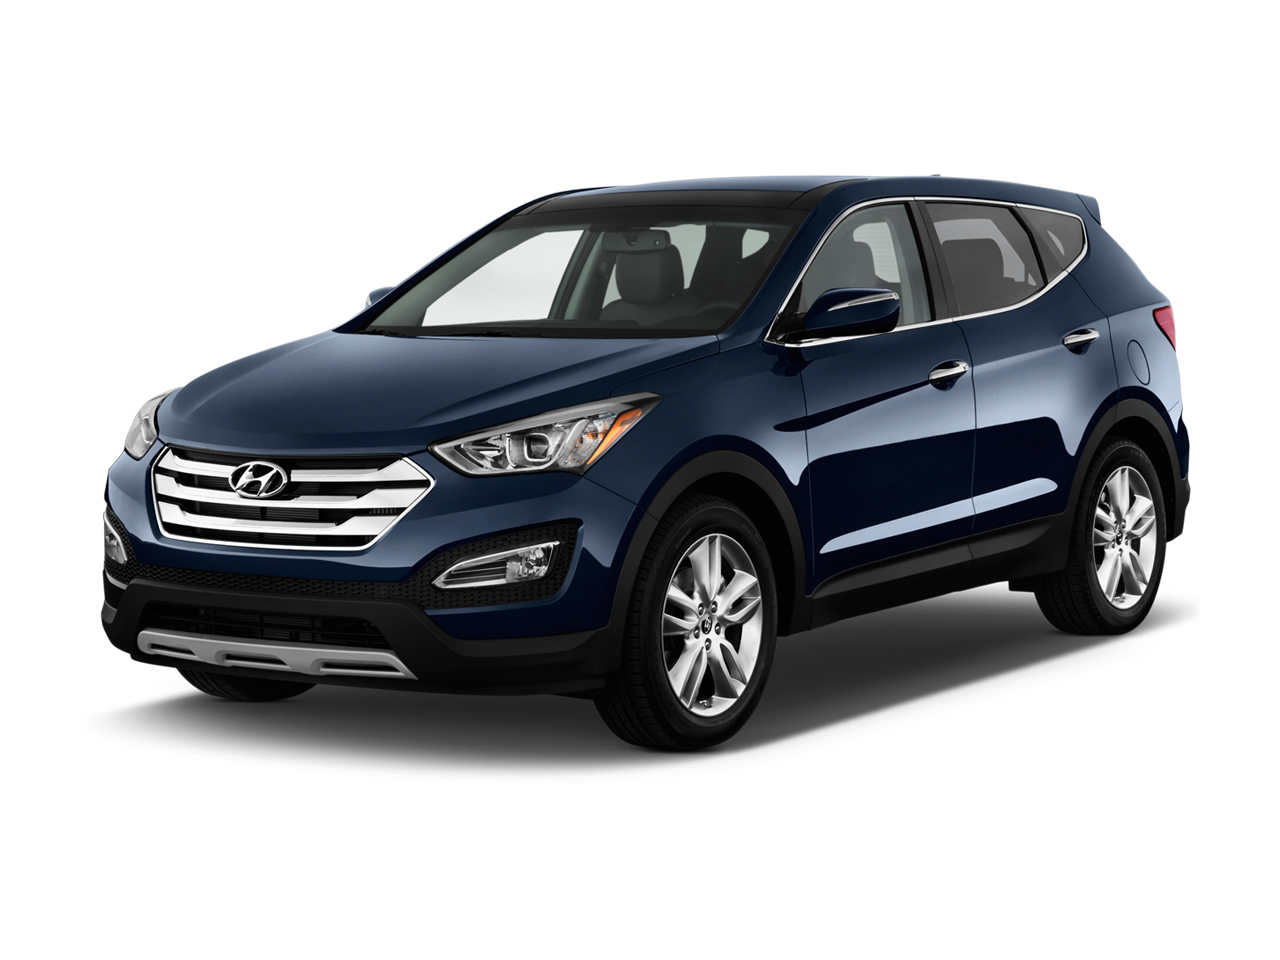 new and used hyundai santa fe sport prices photos reviews specs the car connection. Black Bedroom Furniture Sets. Home Design Ideas